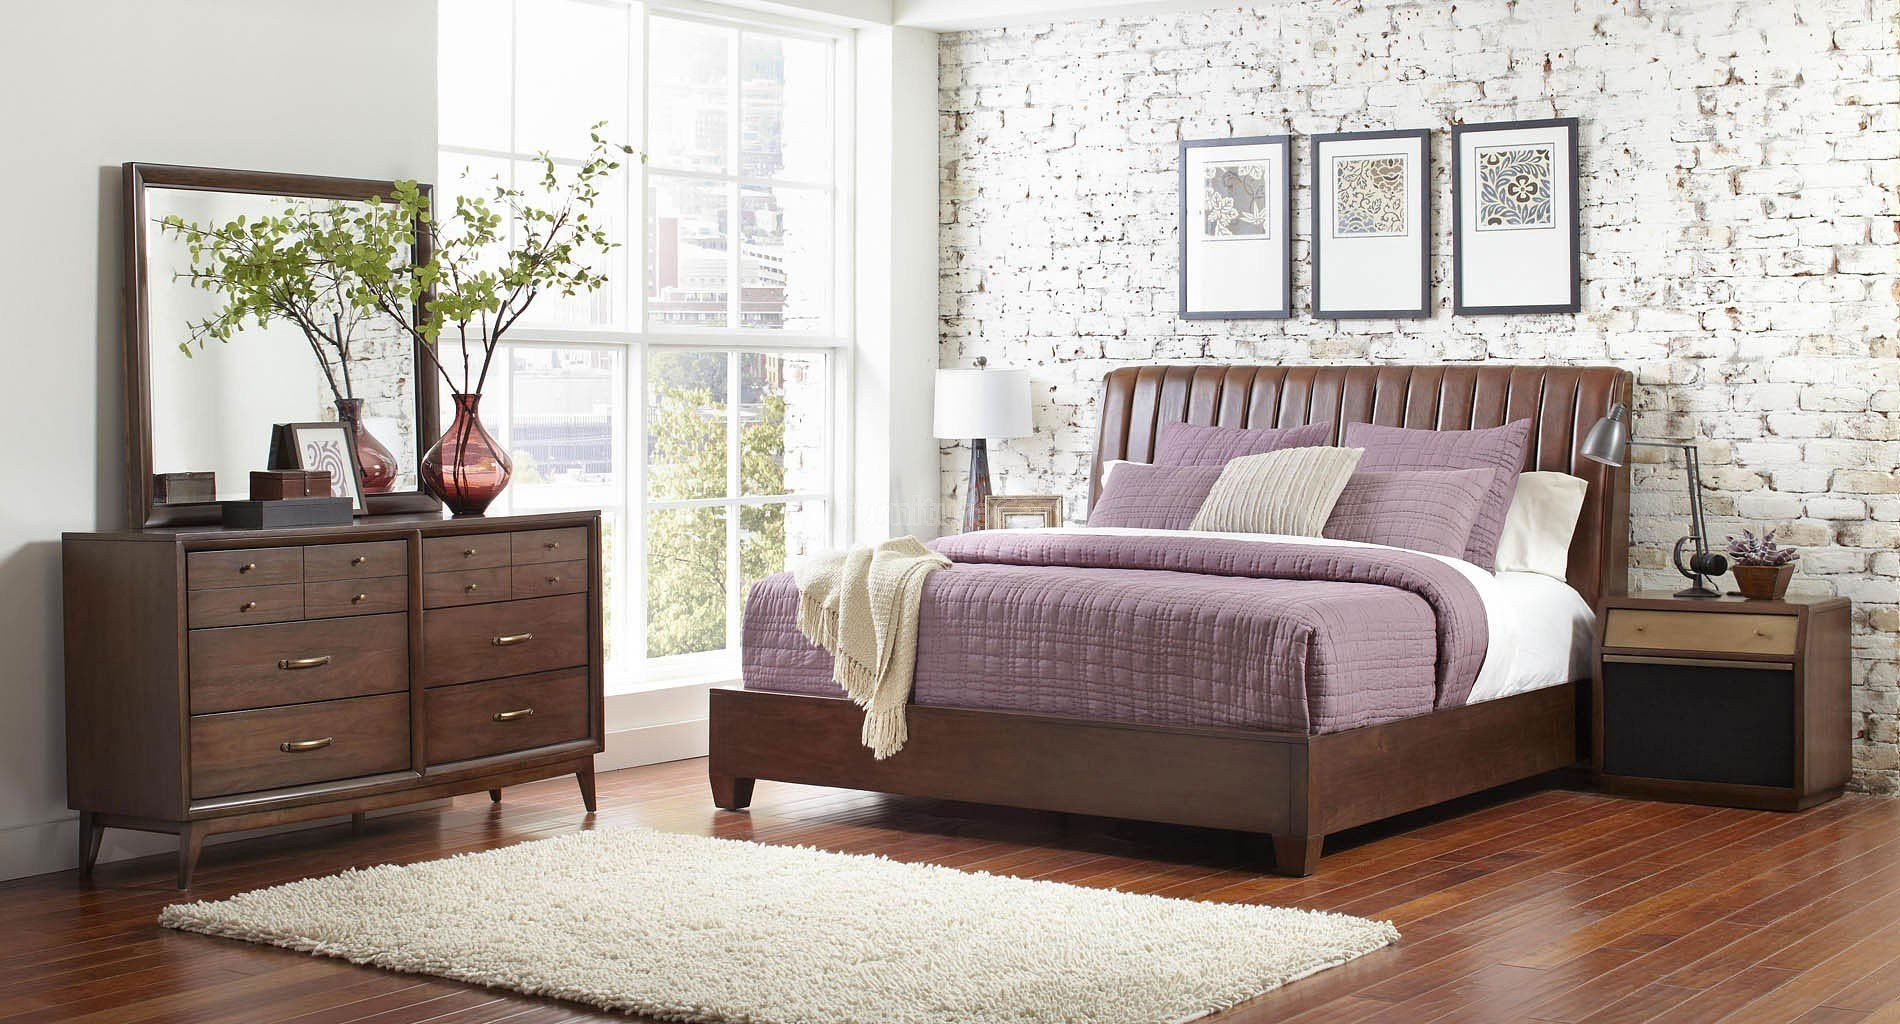 Best Ashley Furniture Leighton Bedroom Set Reviews Home With Pictures